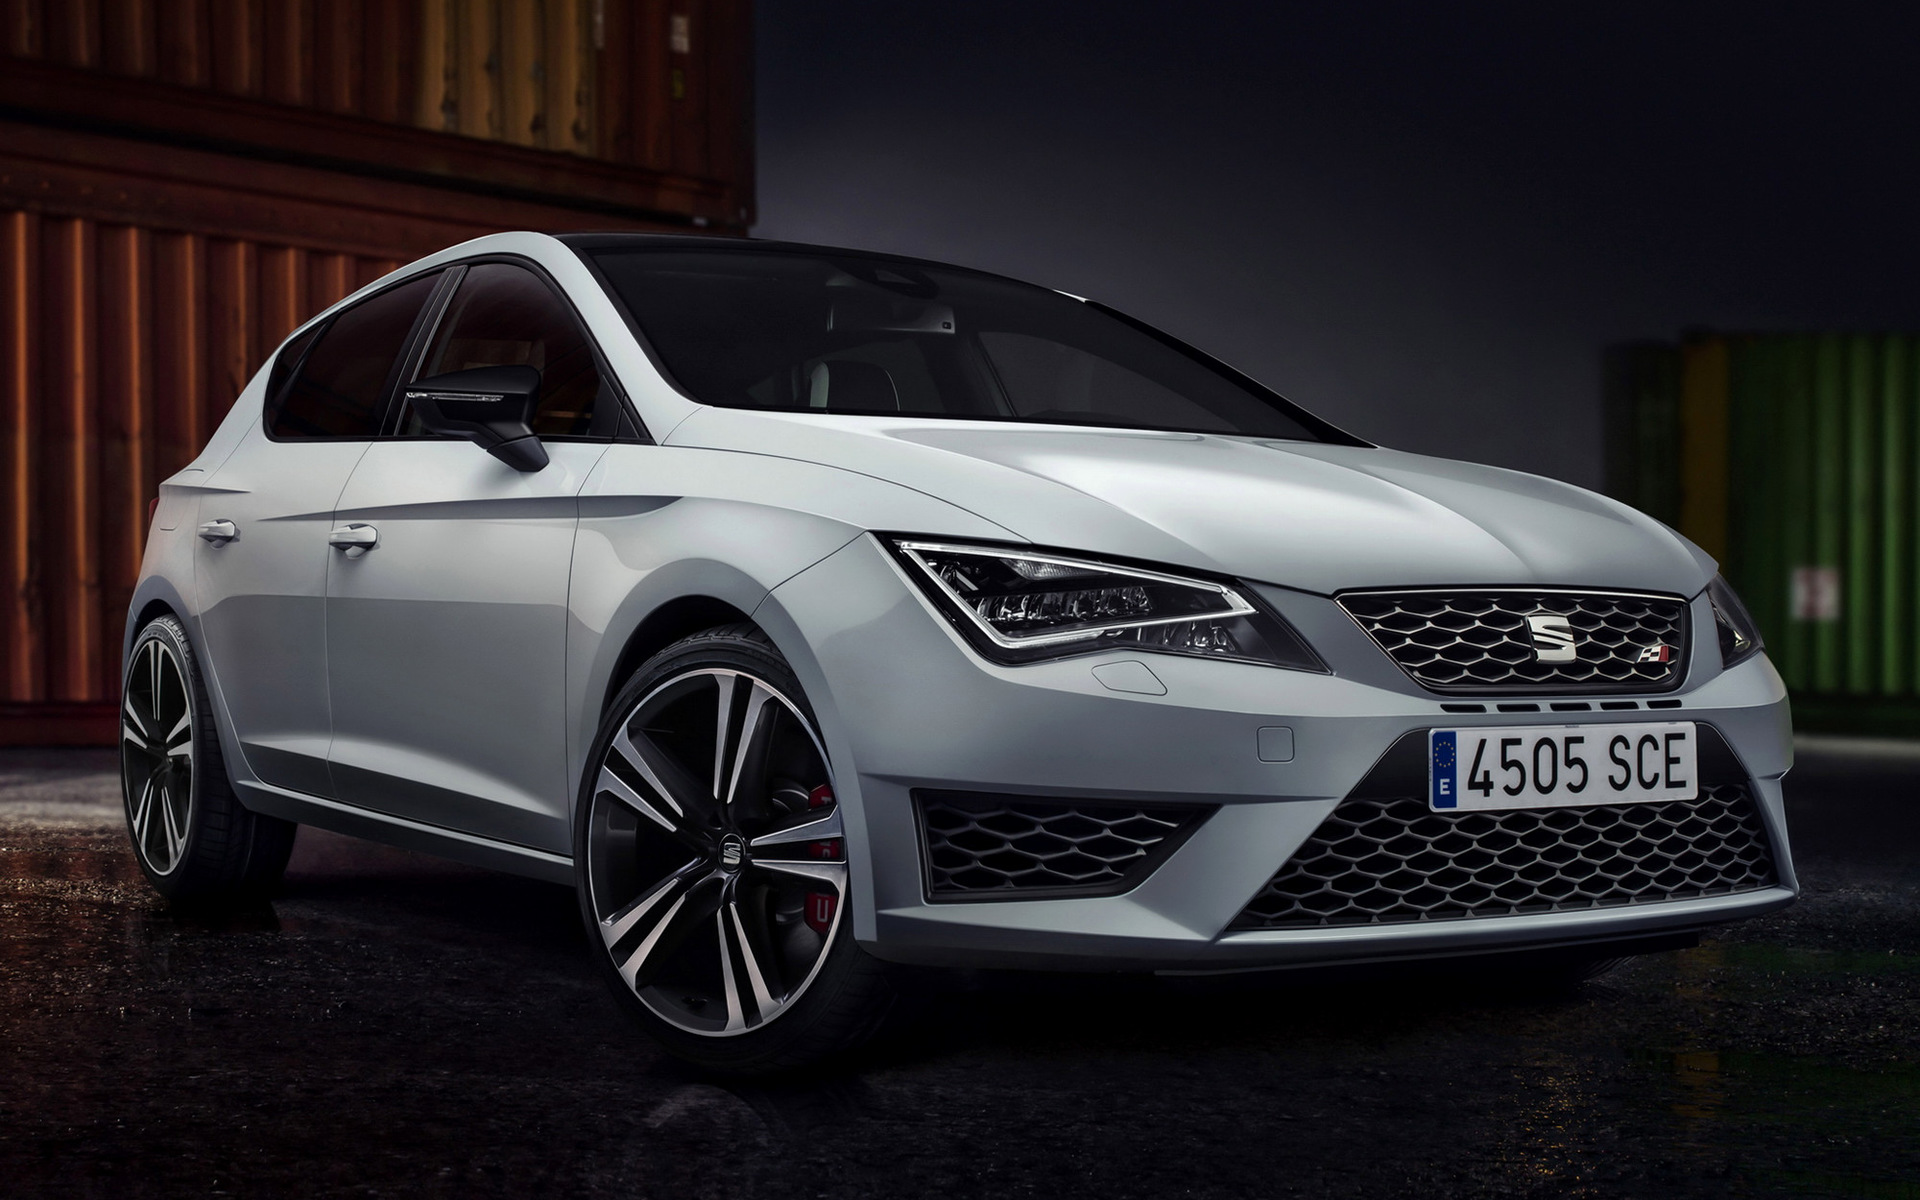 2014 Seat Leon Cupra - Wallpapers and HD Images | Car Pixel